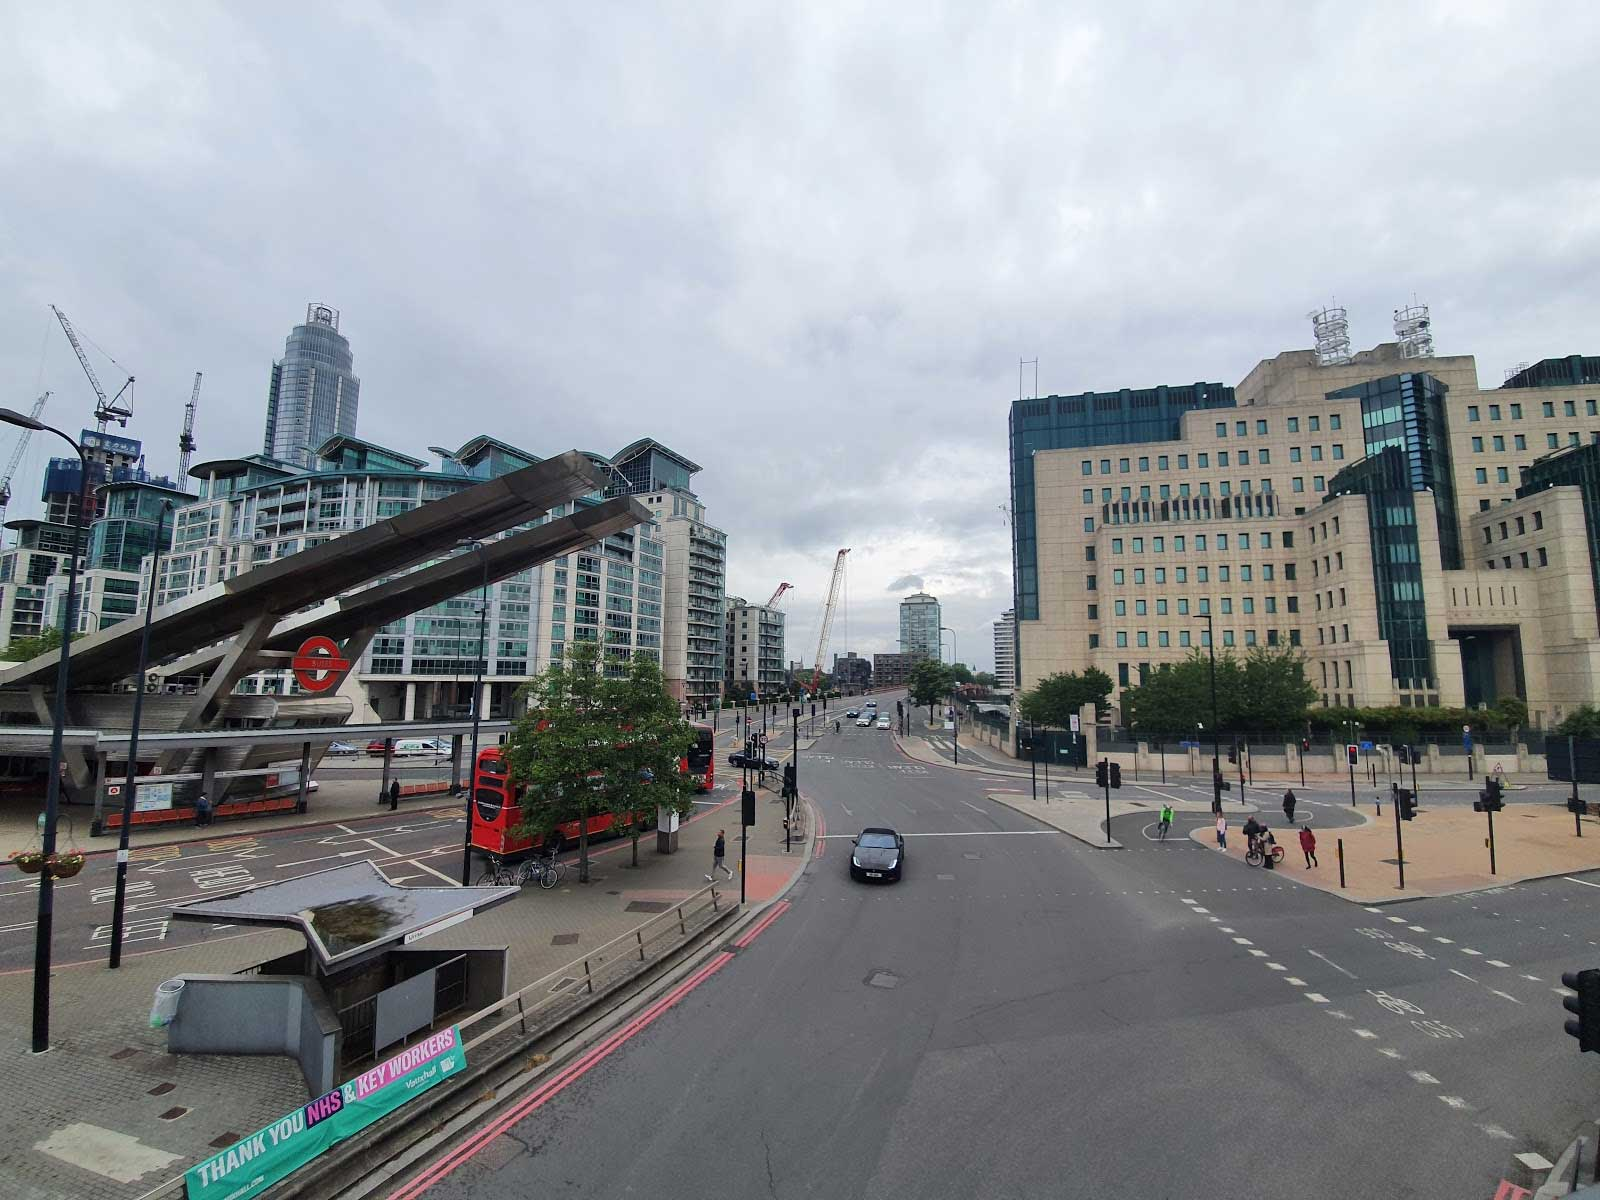 view of Vauxhall Cross with MI5 building on the right hand side